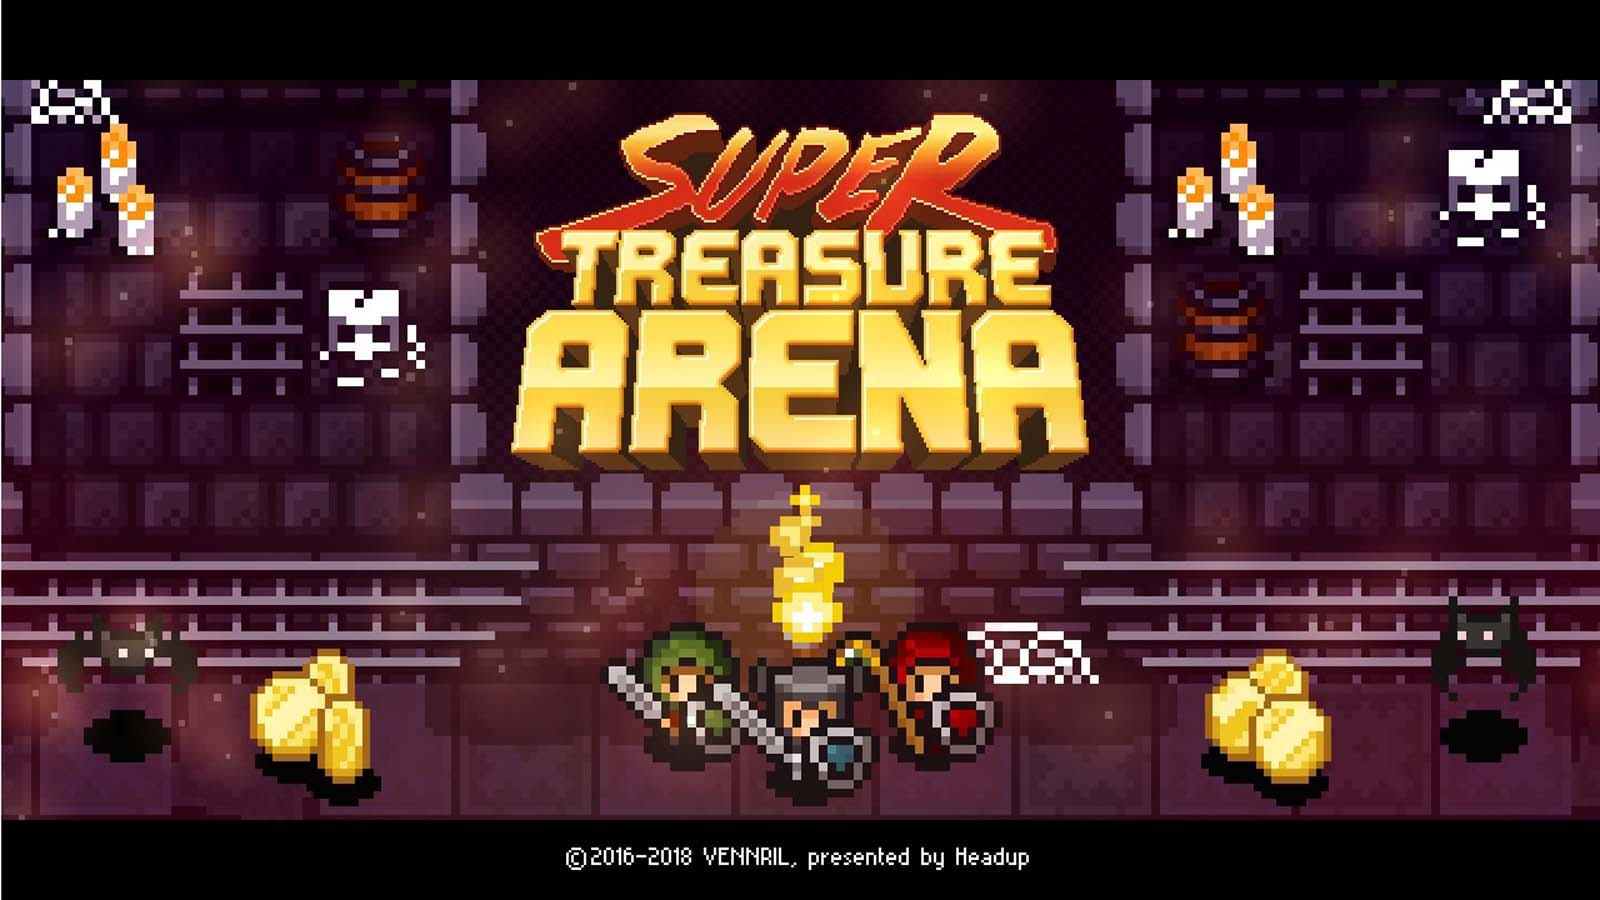 Super Treasure Arena out now